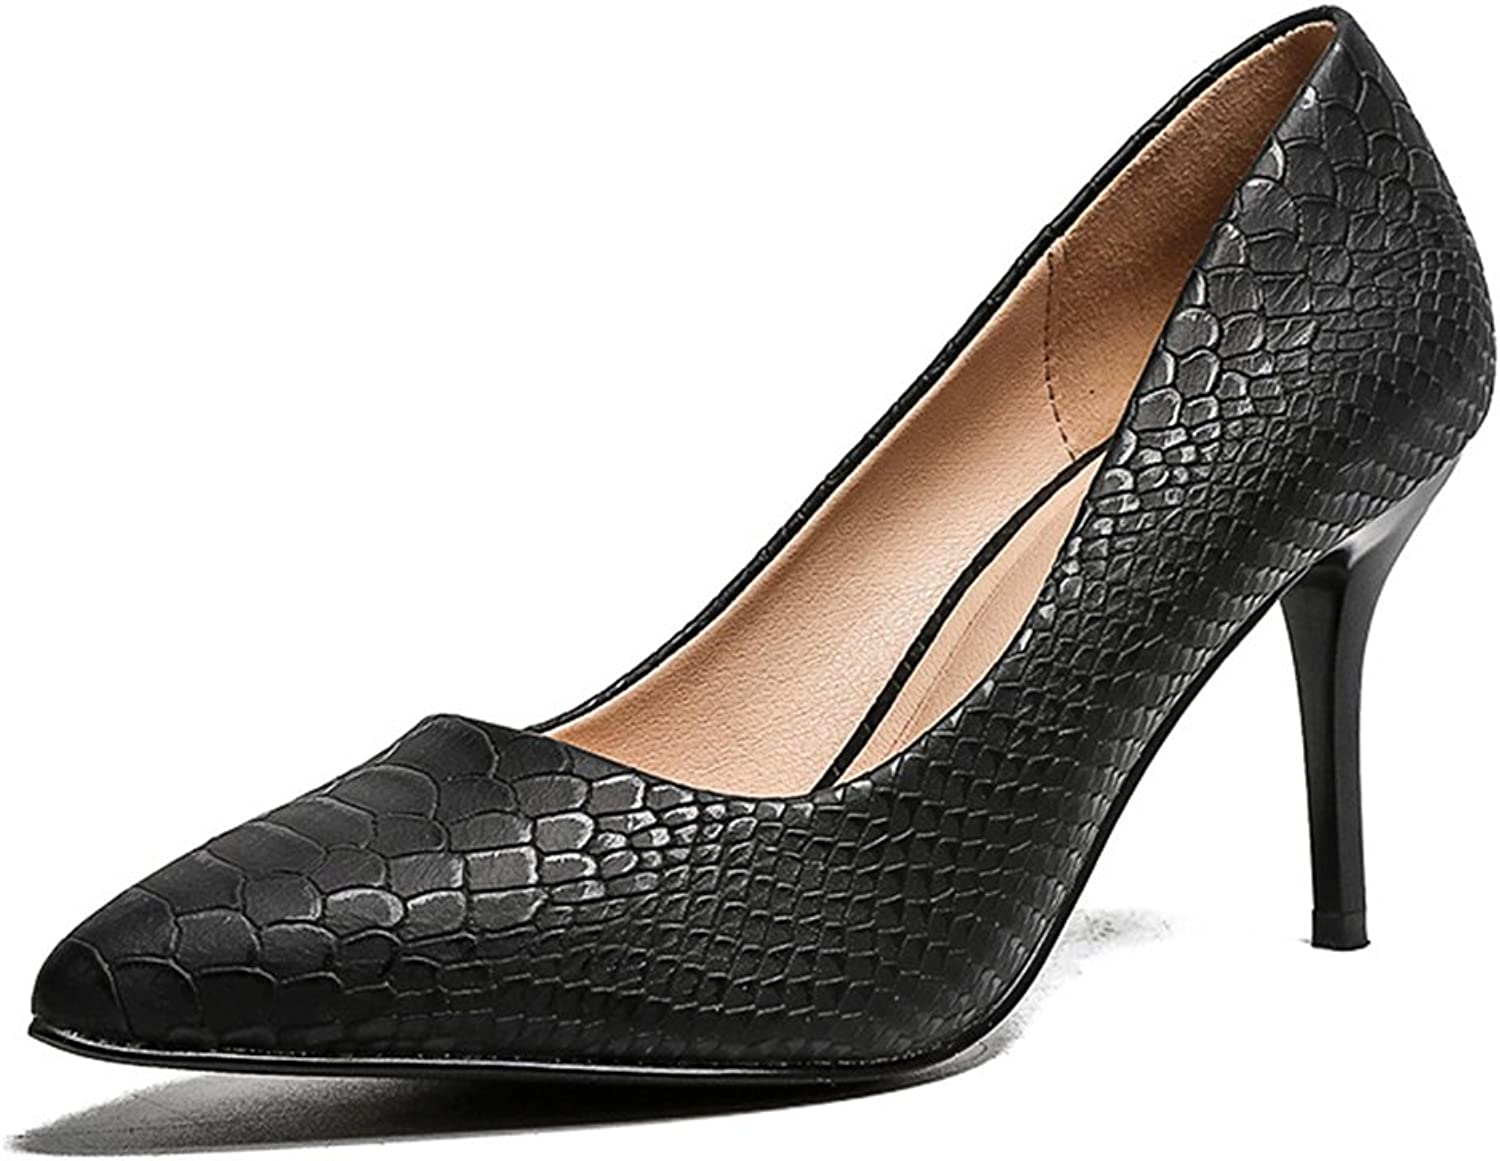 TUYPSHOES Women's Serpentine Stiletto Heel High Heels Shallow Mouth shoes Pumps